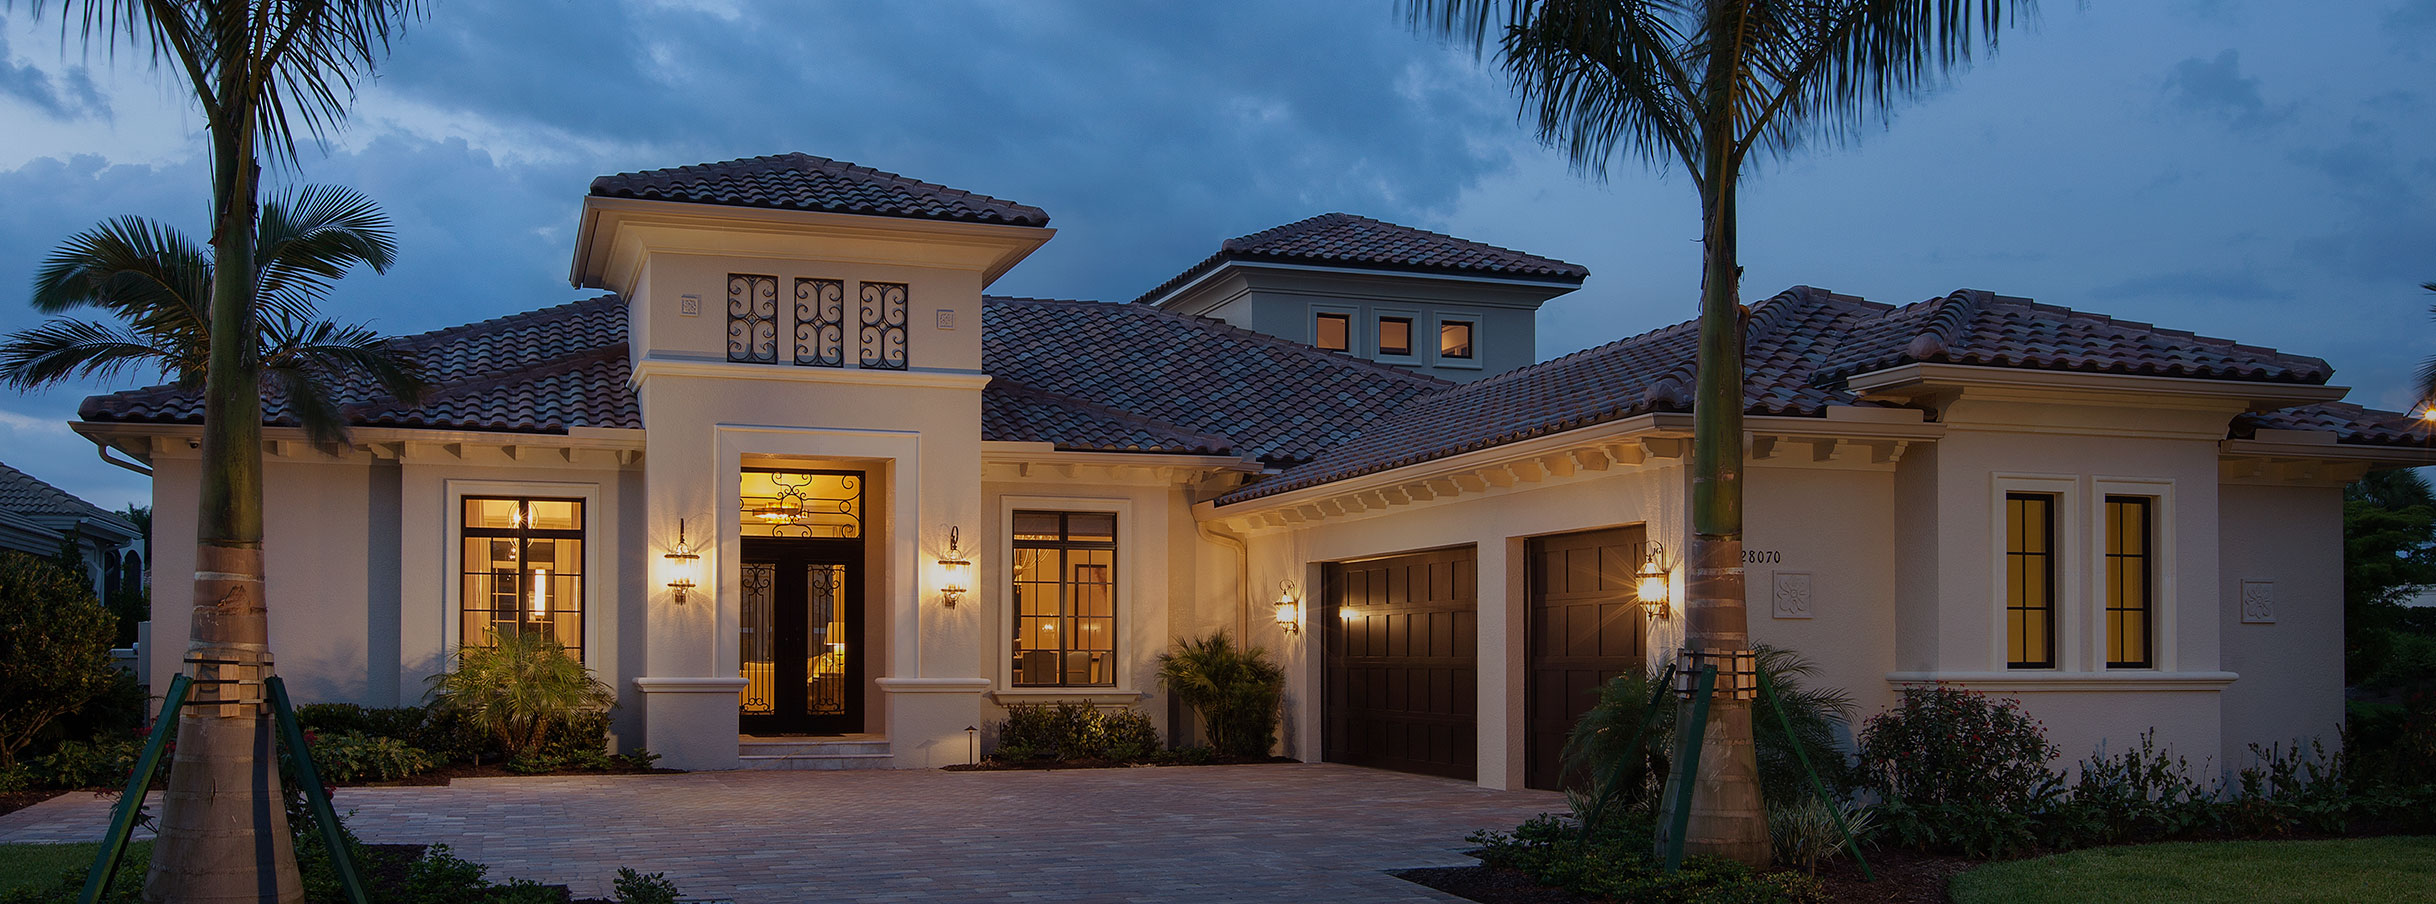 Isabella Two Story in Mediterra Naples